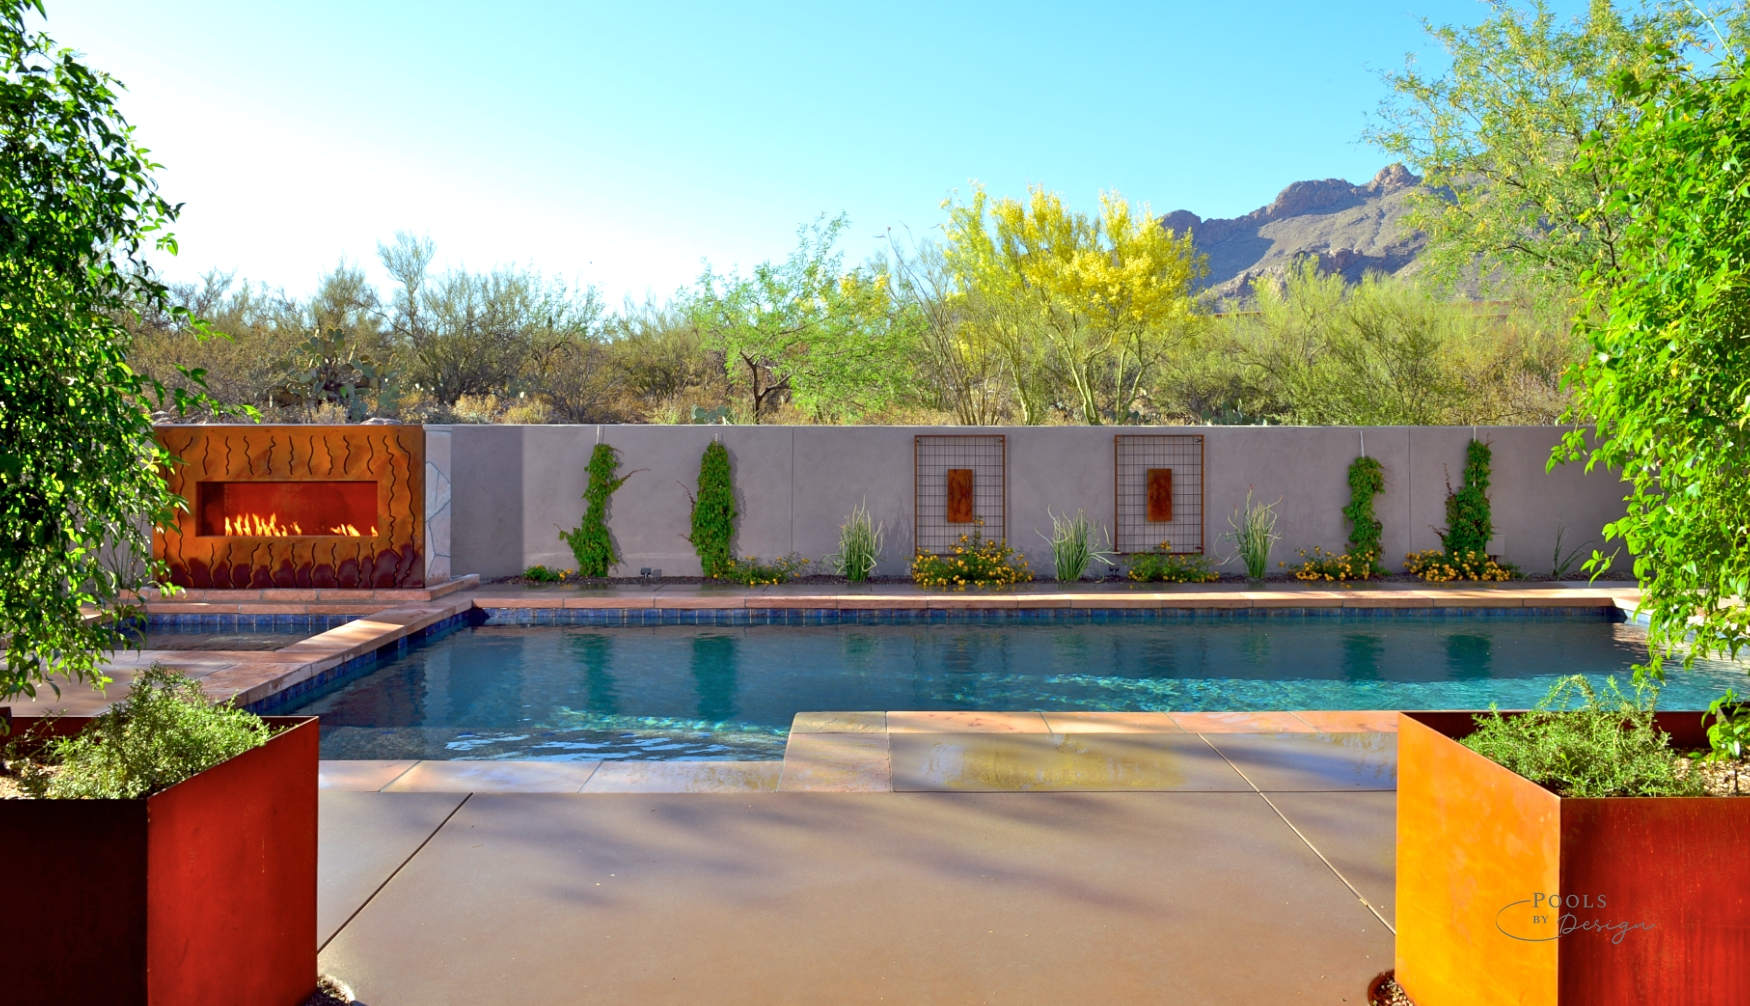 Pools by Design – Quality Custom Pool Spa and Outdoor Living Design ...